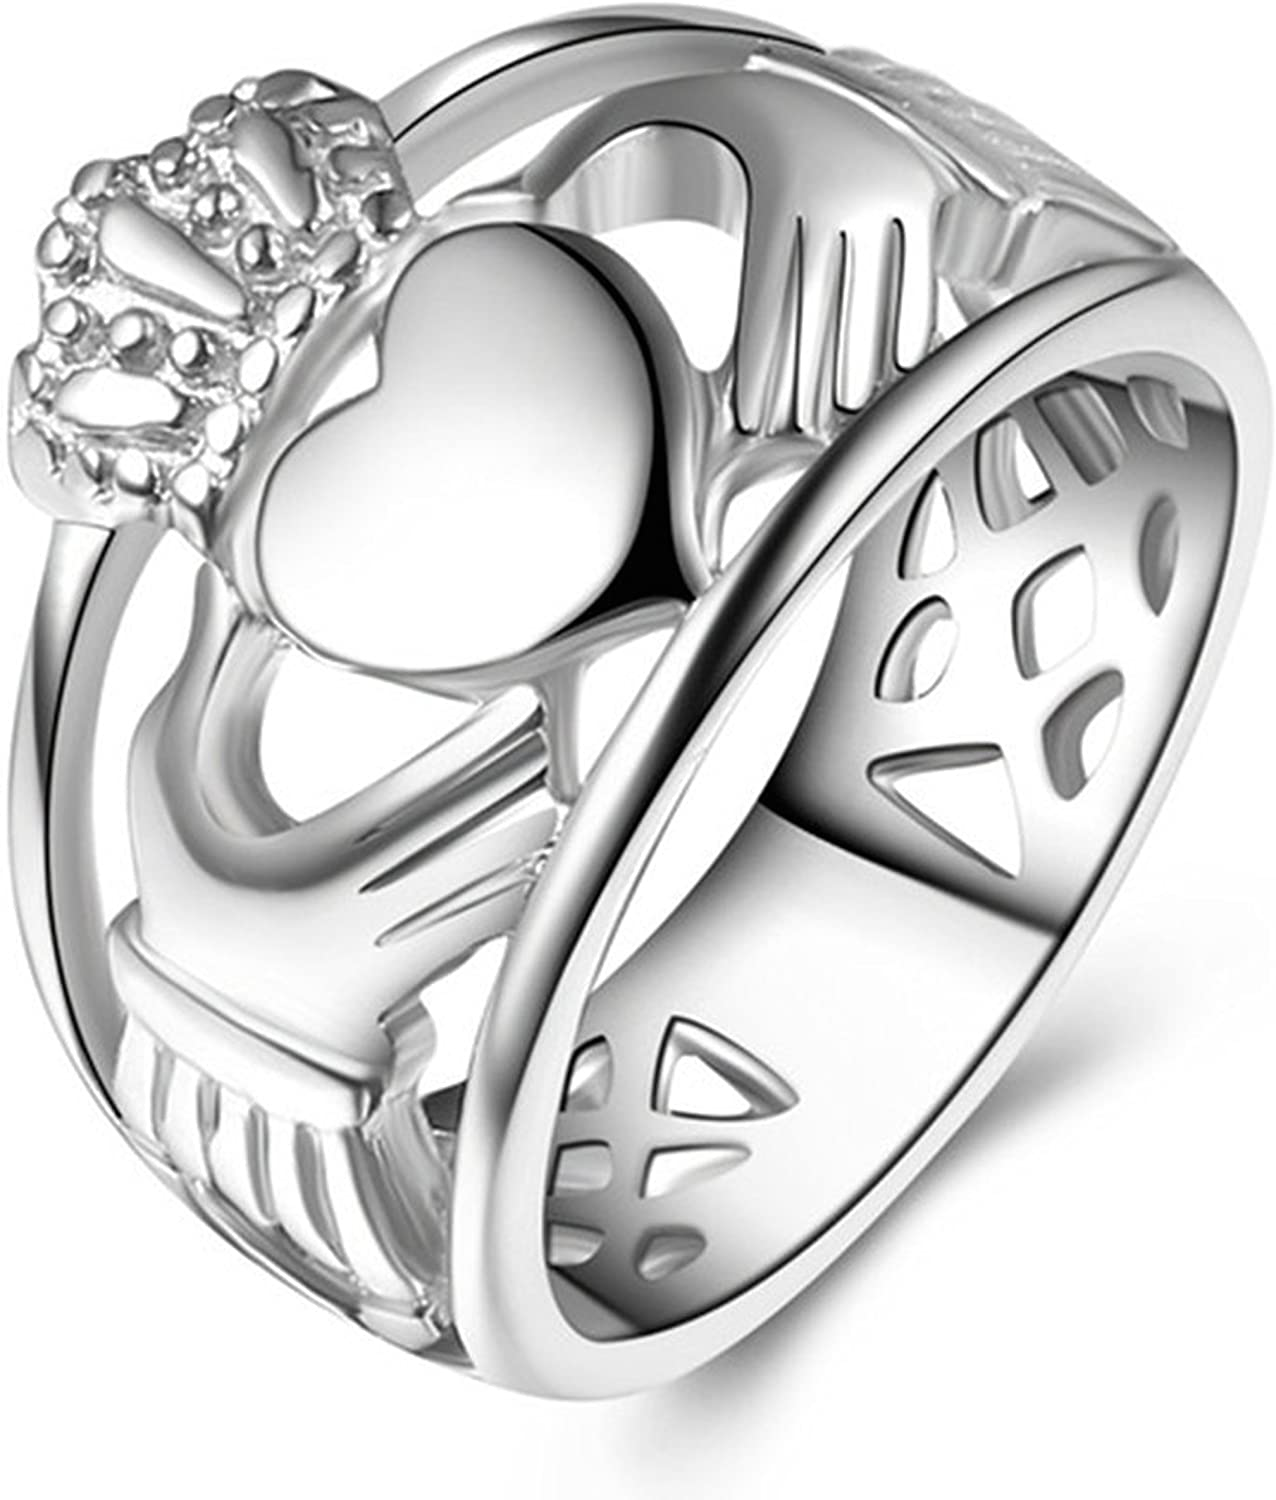 LineAve Stainless Steel Irish Claddagh Friendship Love Ring, for Men or Women